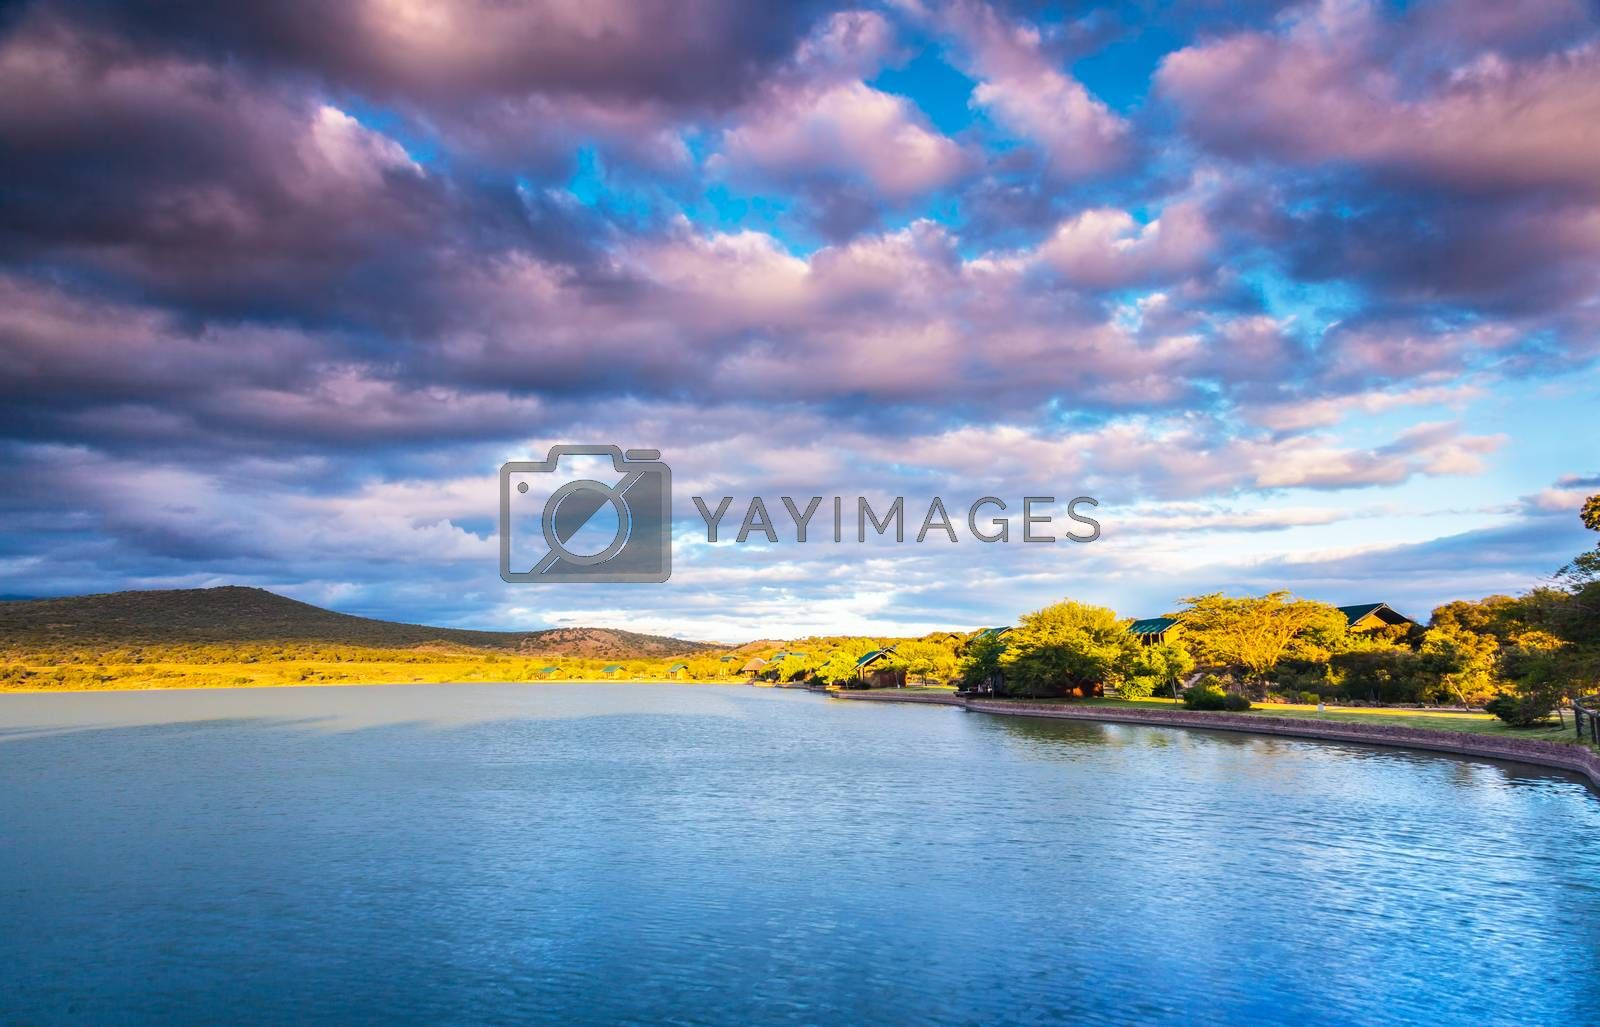 Garden Route in sunny day, beautiful landscape of a lake and mountains with fluffy clouds over it, panoramic view, amazing nature of South Africa